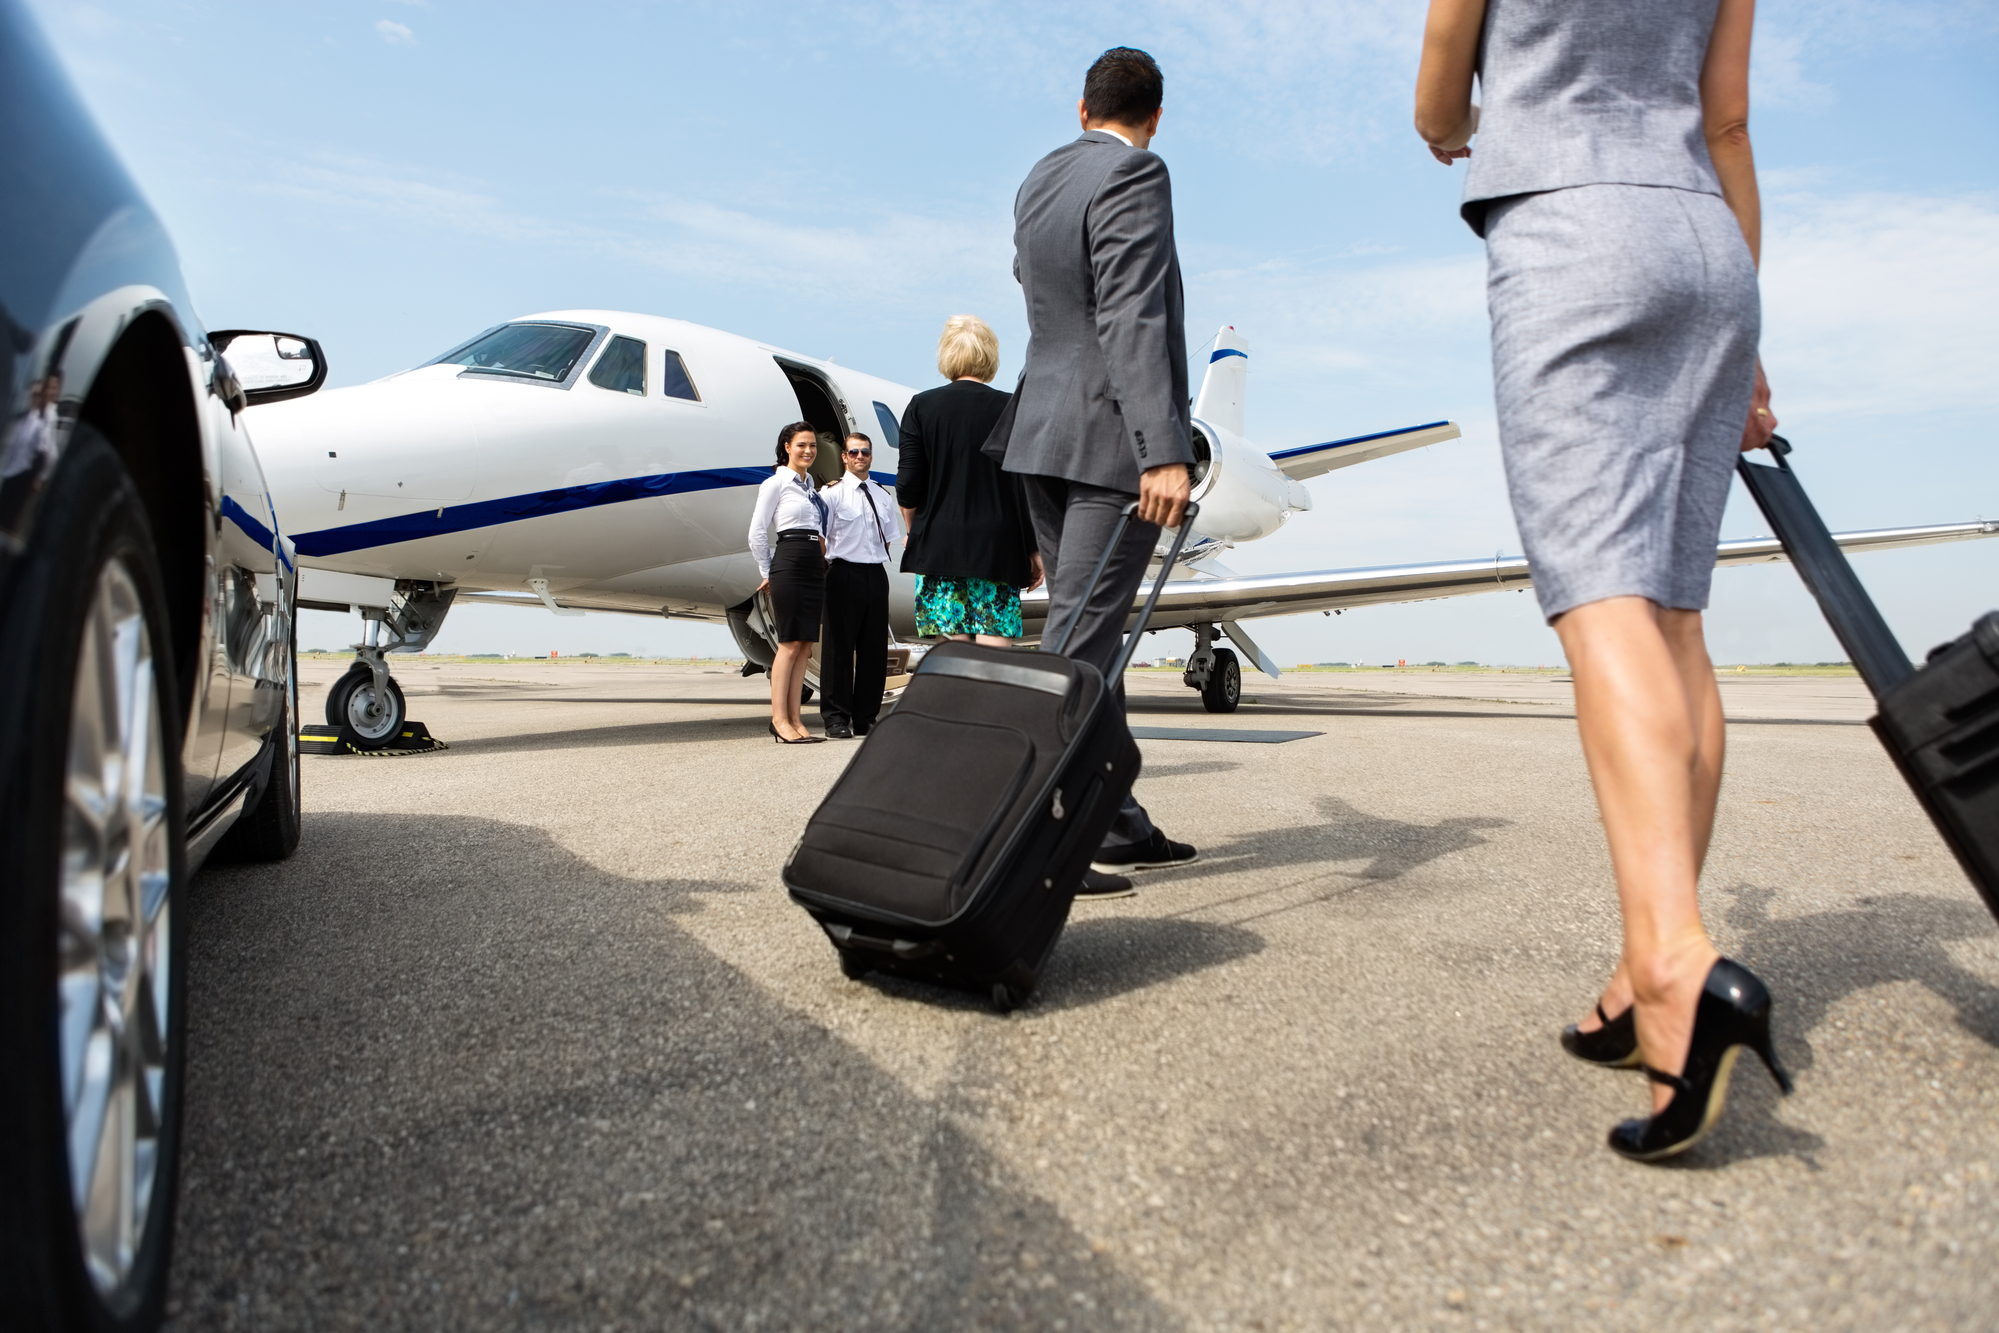 Airplanes to Charter